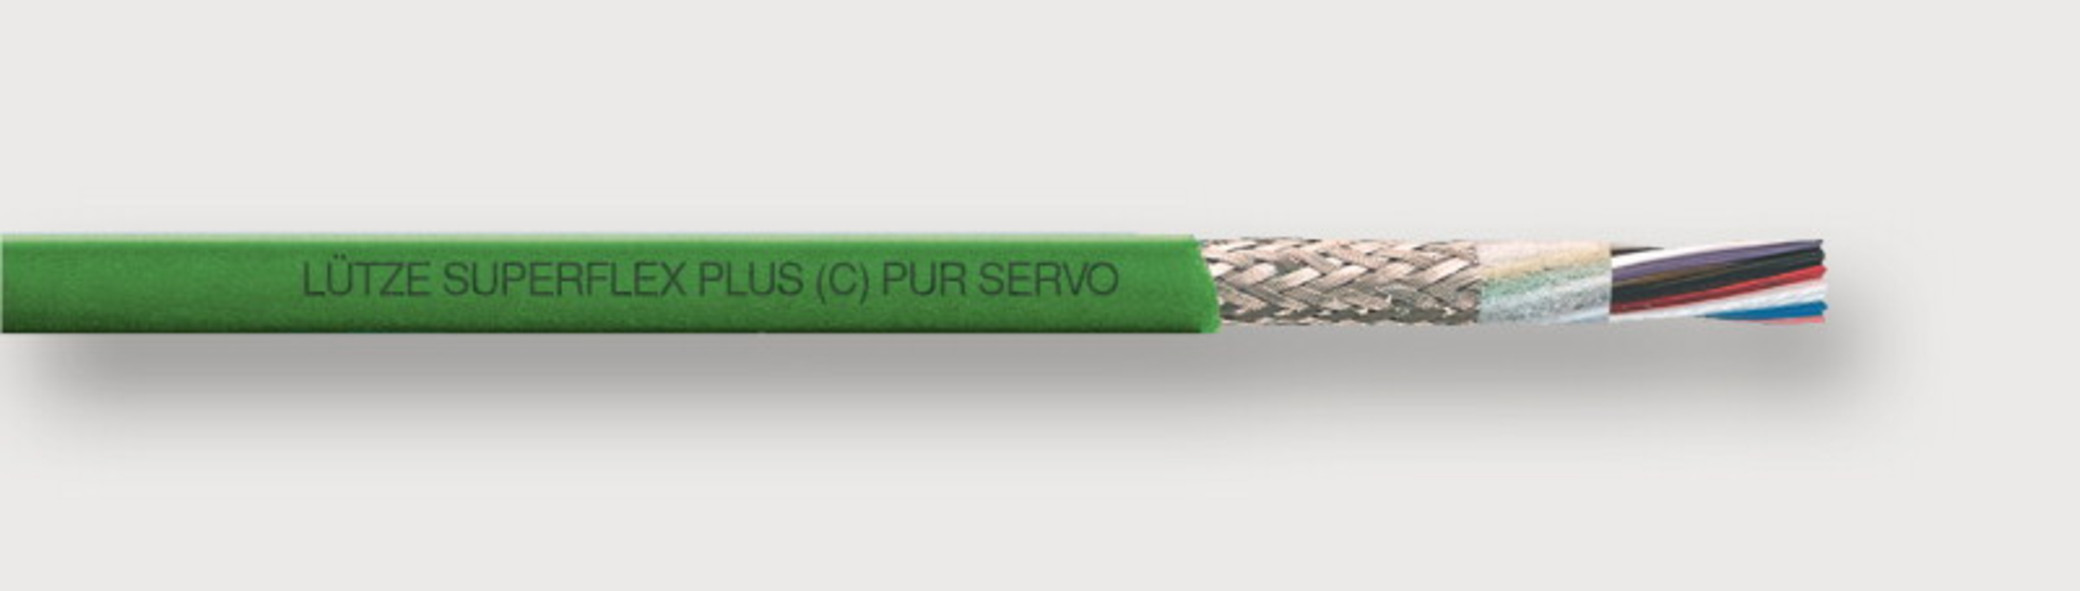 111489 - LÜTZE SUPERFLEX® PLUS (C) PUR FEEDBACK Feedback cables for Allen-Bradley and other systems For highest requirements in drive technology